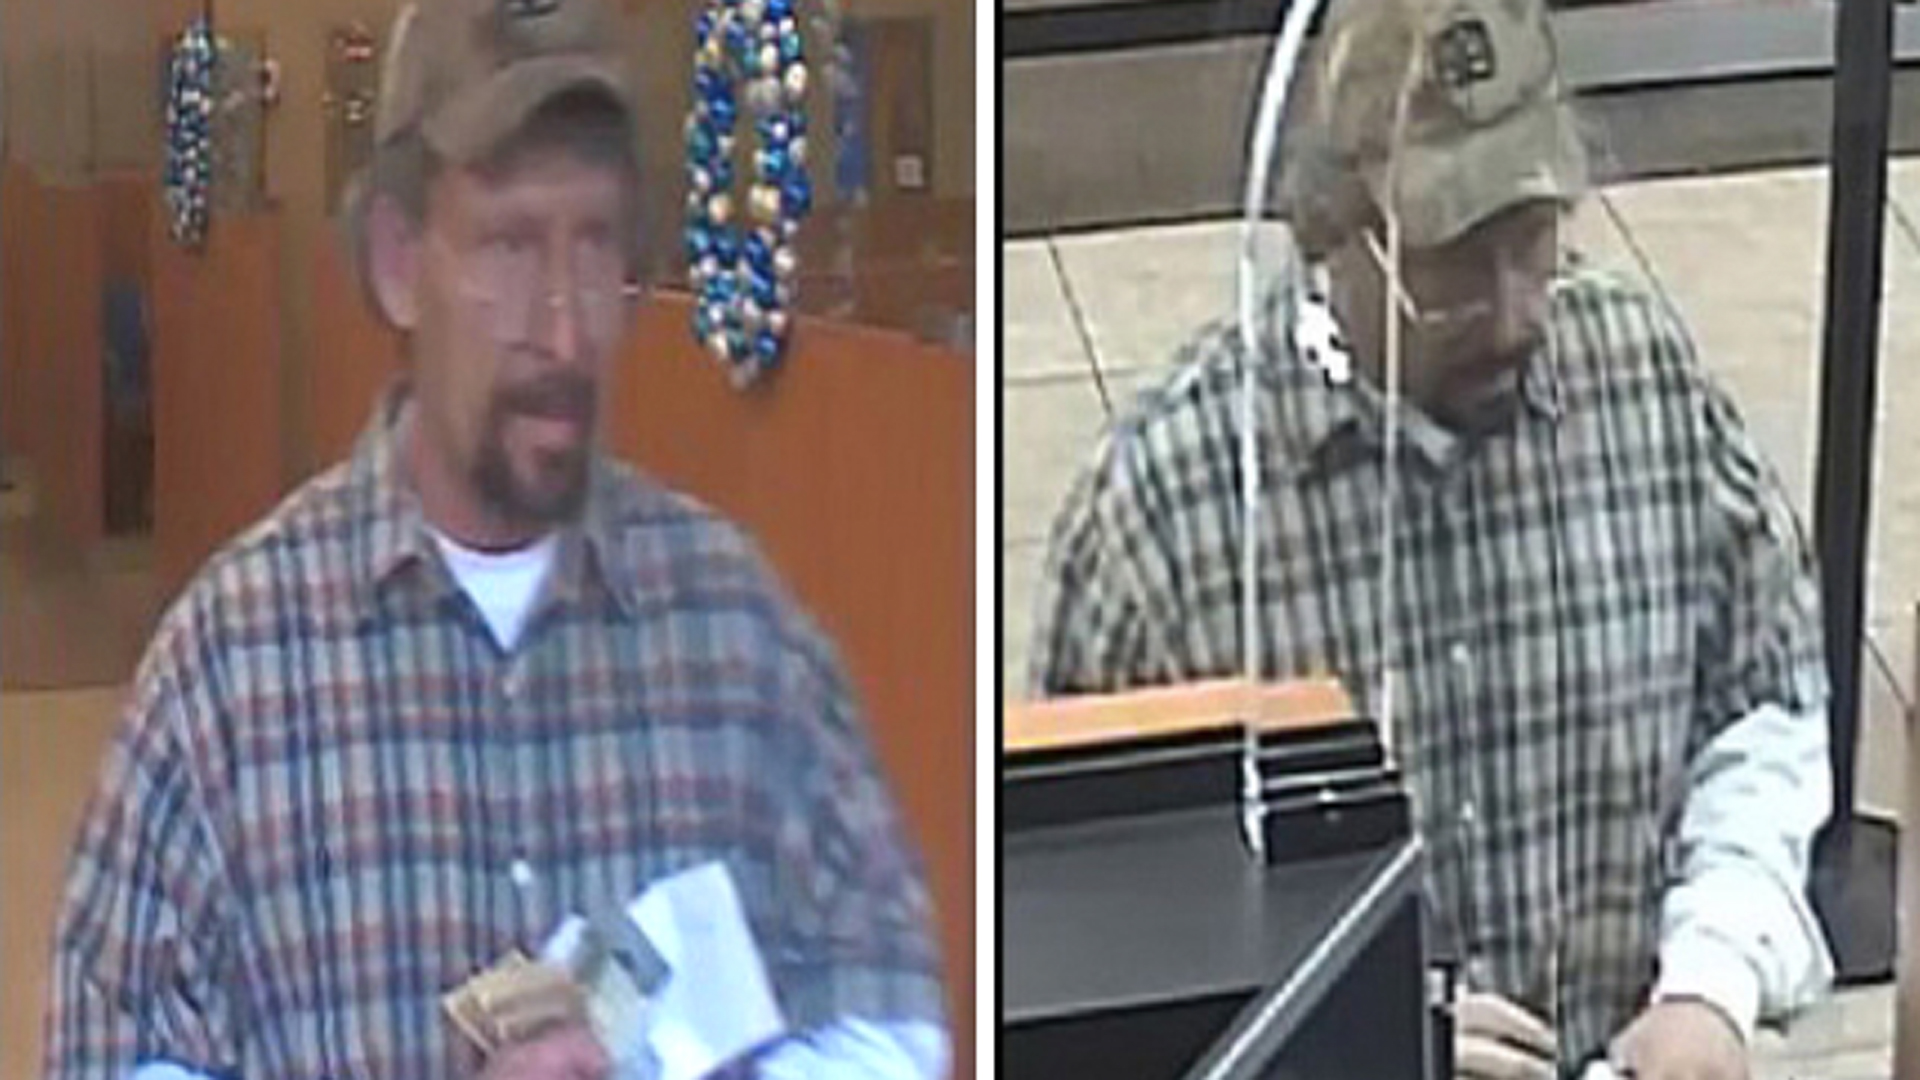 A bank robbery suspect is seen in an image provided by the Riverside County Sheriff's Department on Dec. 11, 2019.